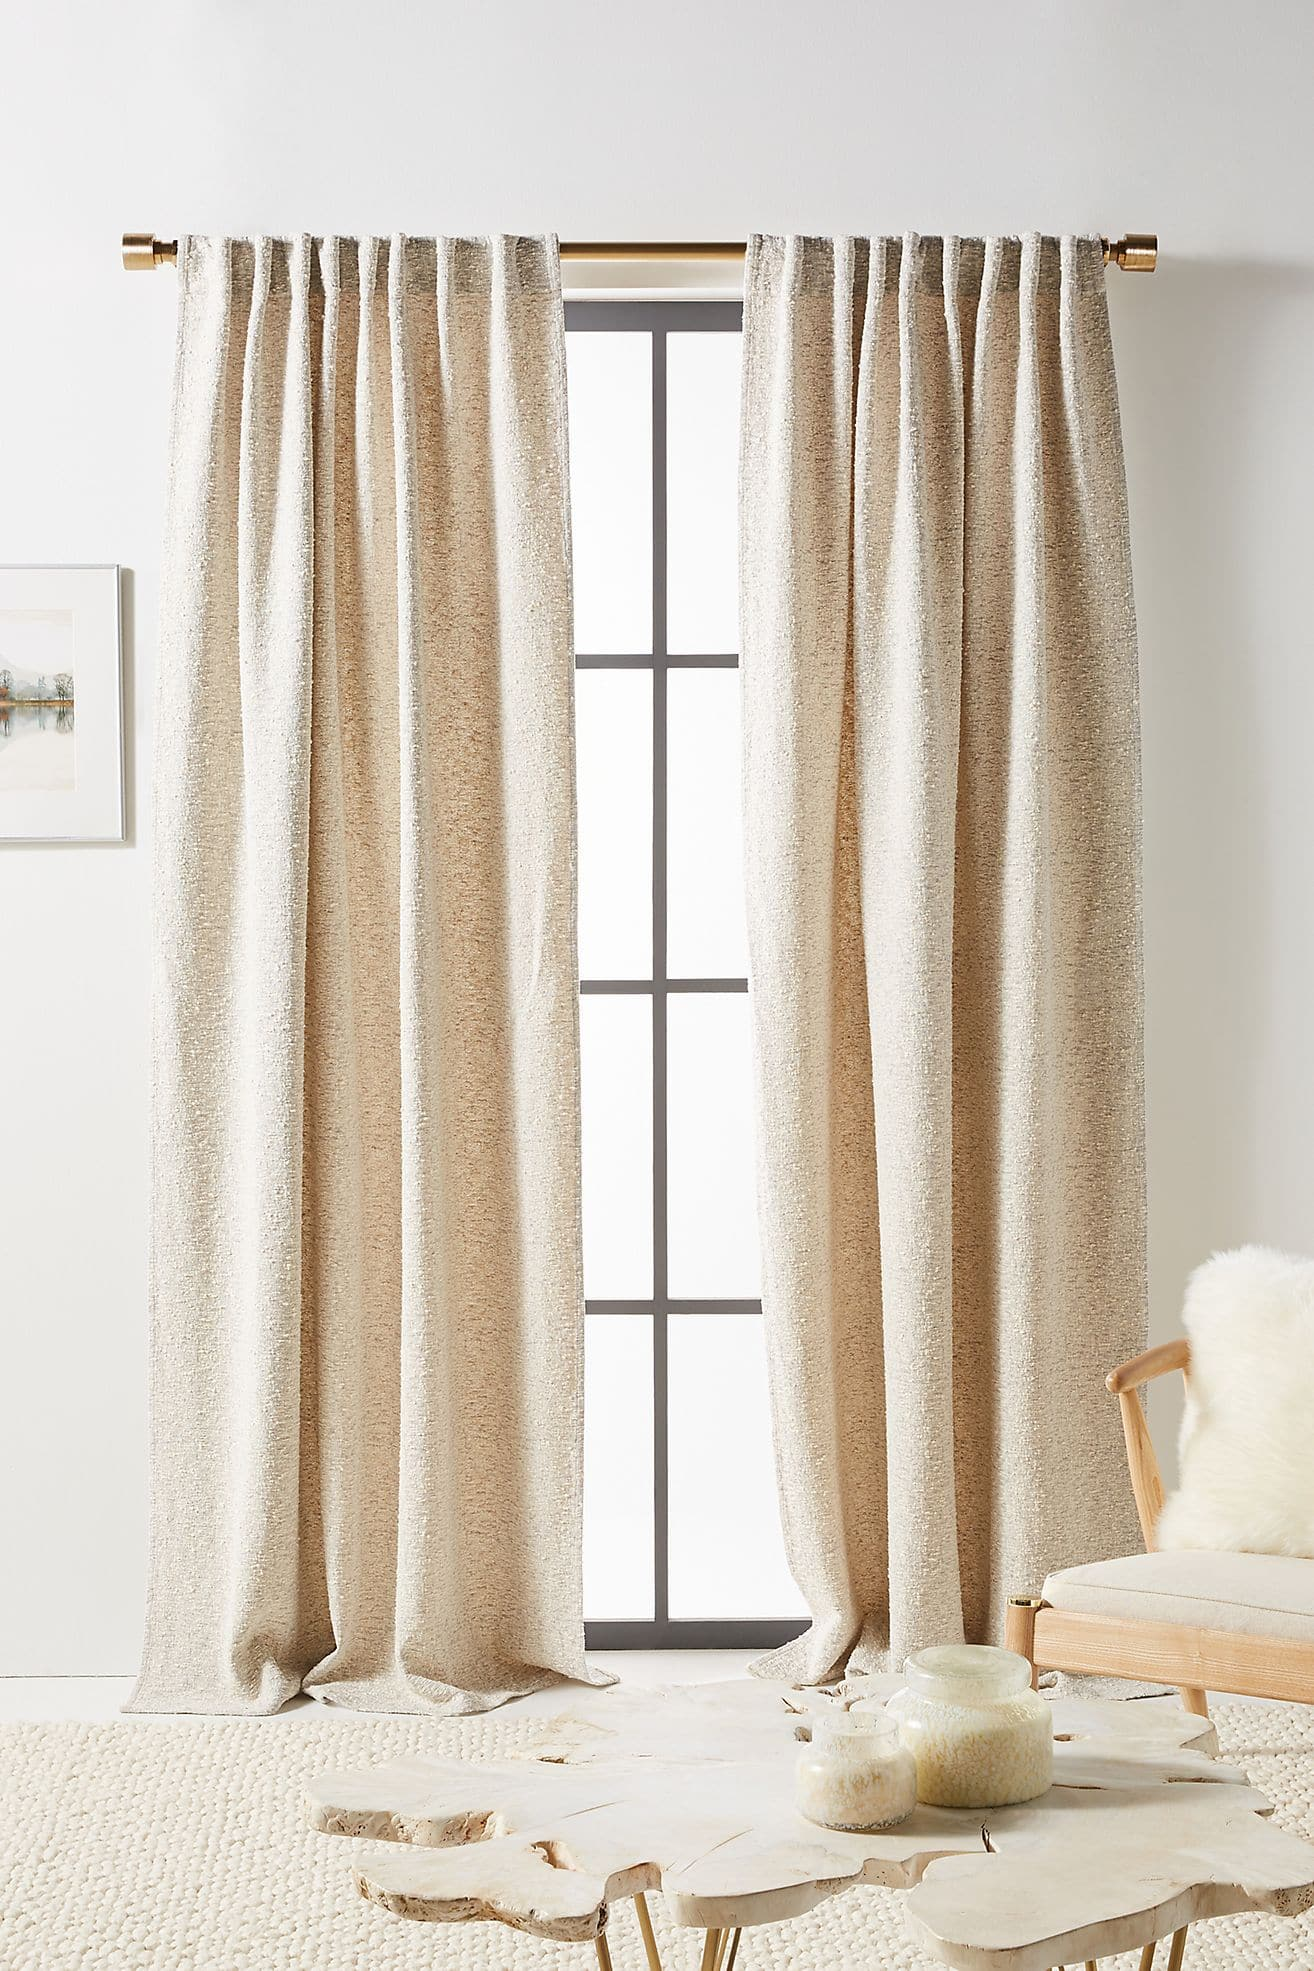 Textured Curtains in a Neutral Color